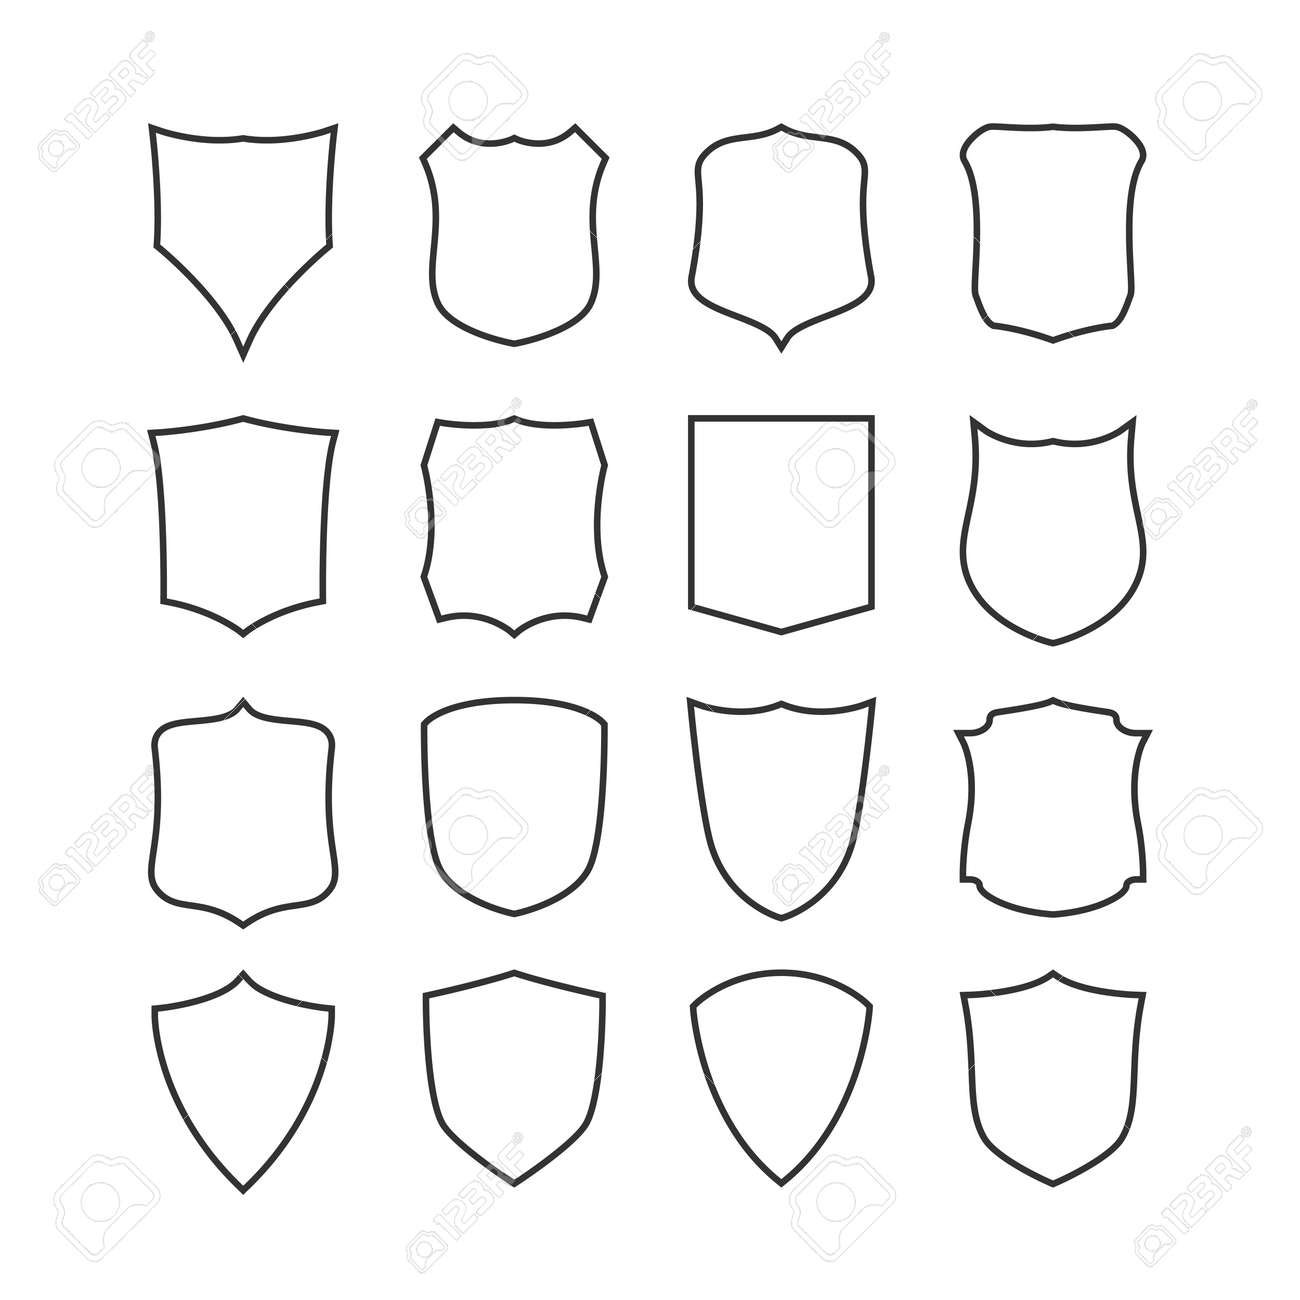 Big Set Of Blank, Classic Shields, Templates. Design Elements ...